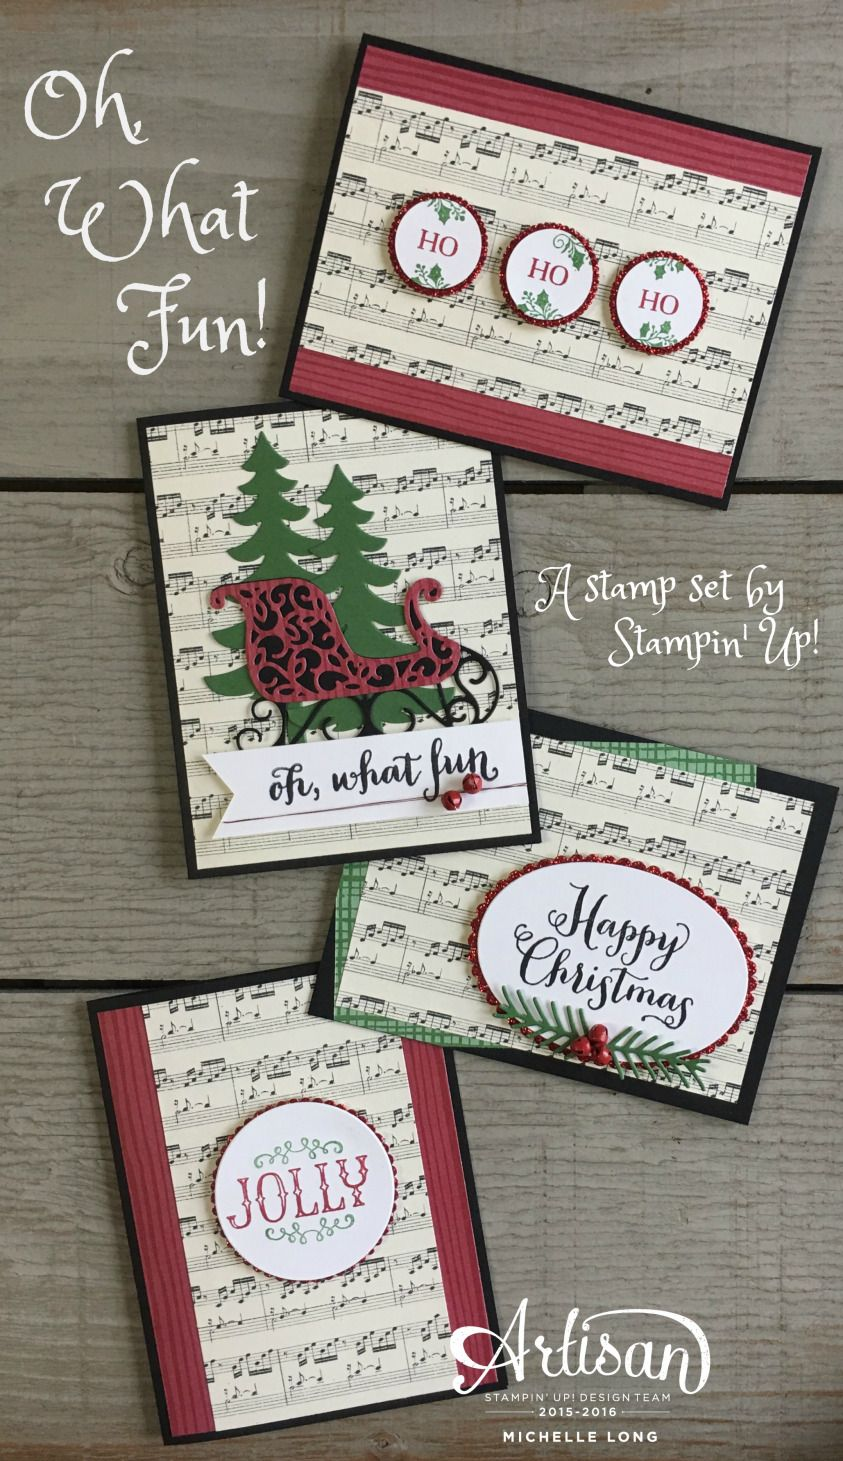 oh-what-fun-stampin365-com-2 | Papercrafting | Pinterest | Christmas ...